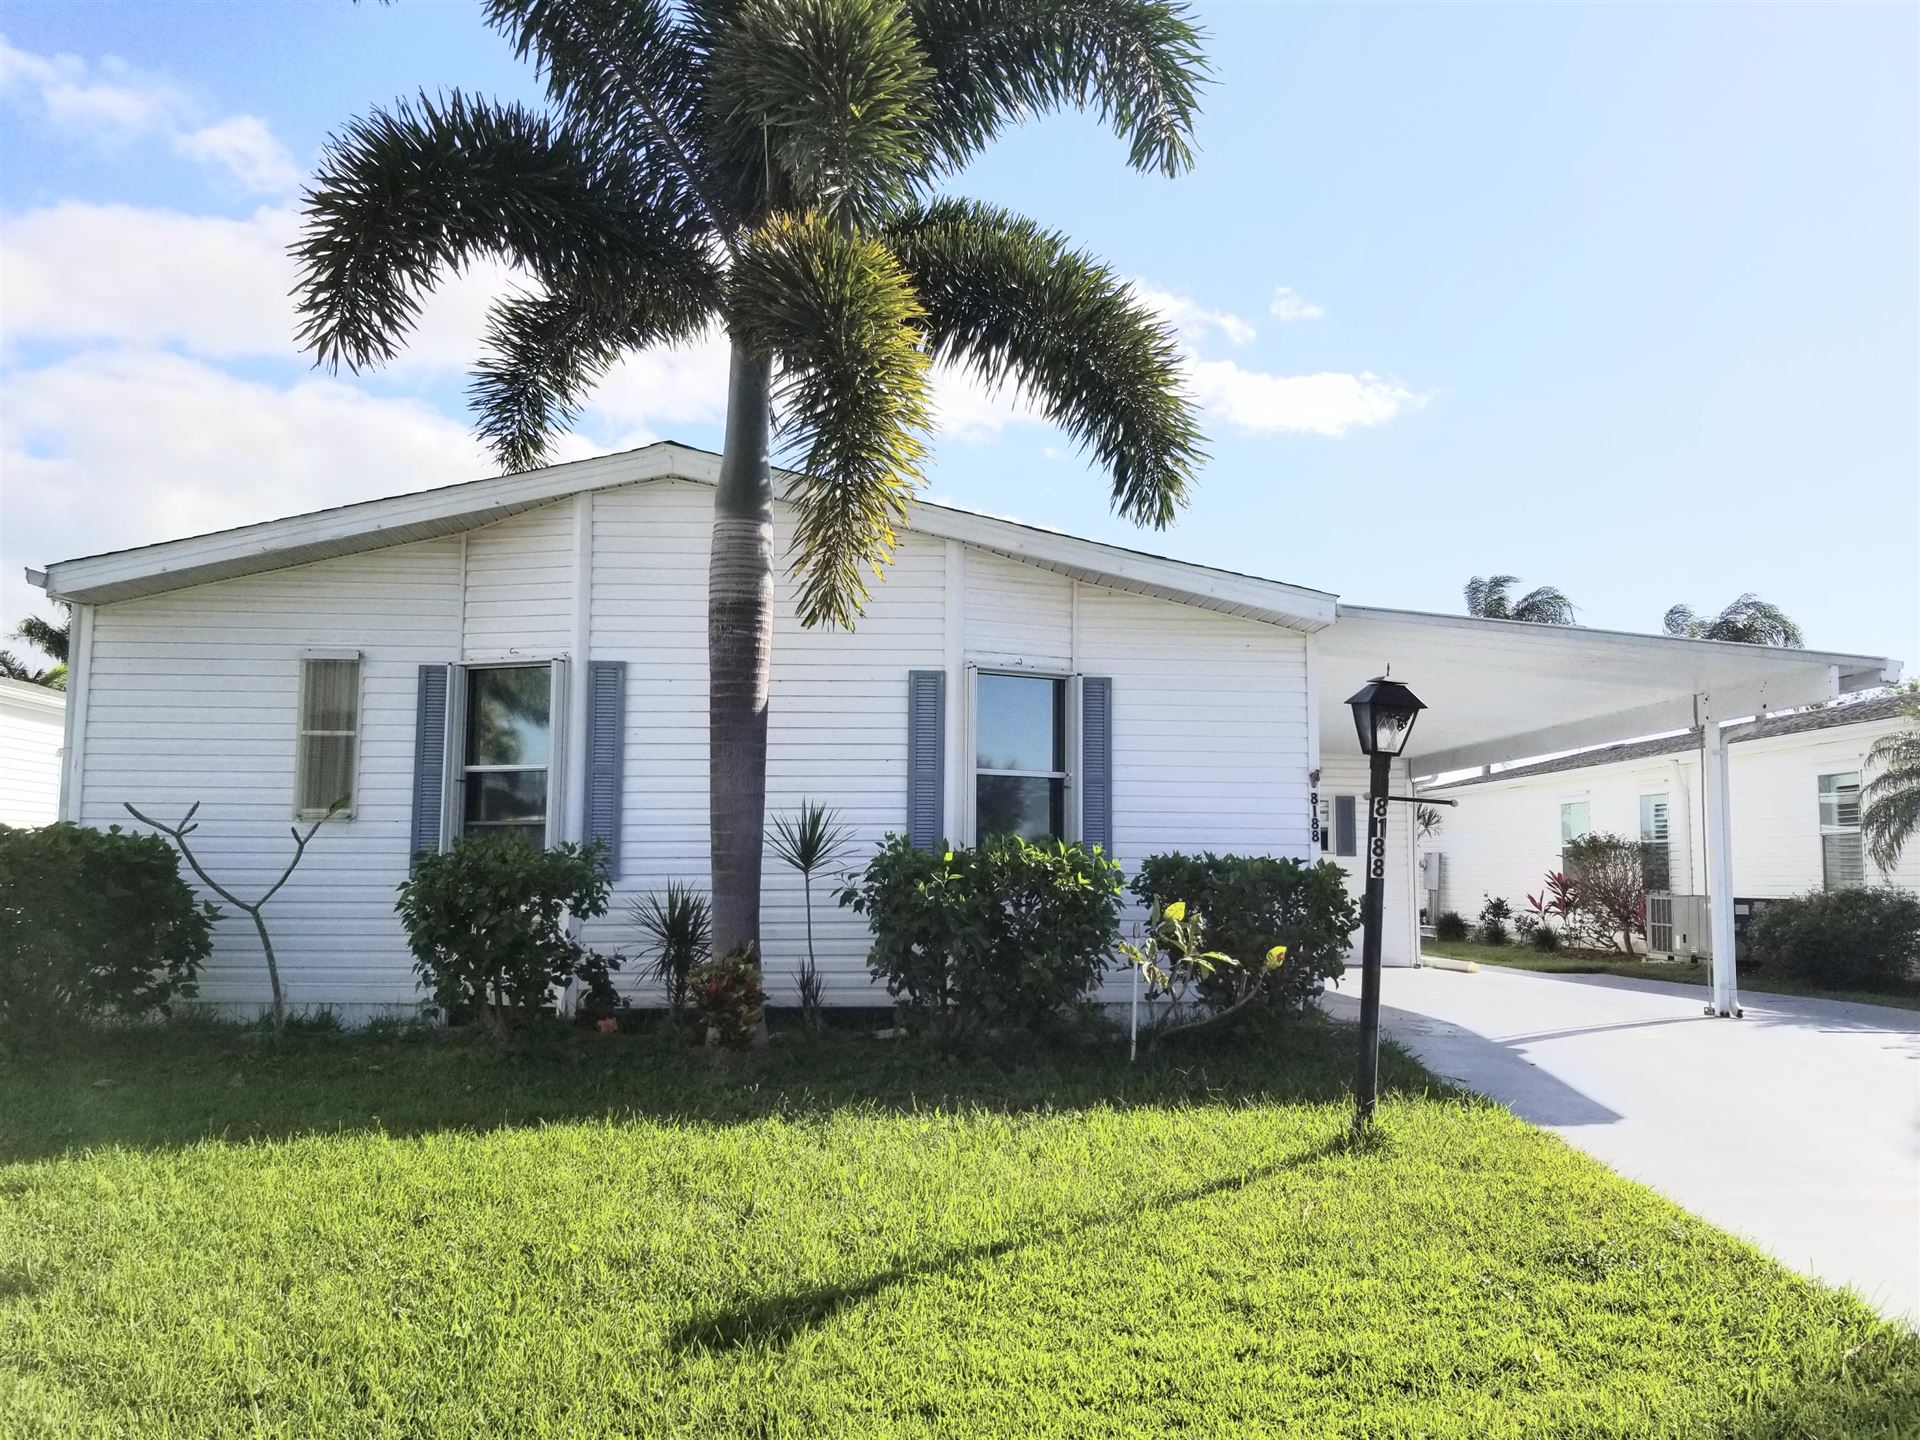 8188 Sandwedge Terrace, Port Saint Lucie, FL 34952 - #: RX-10674073